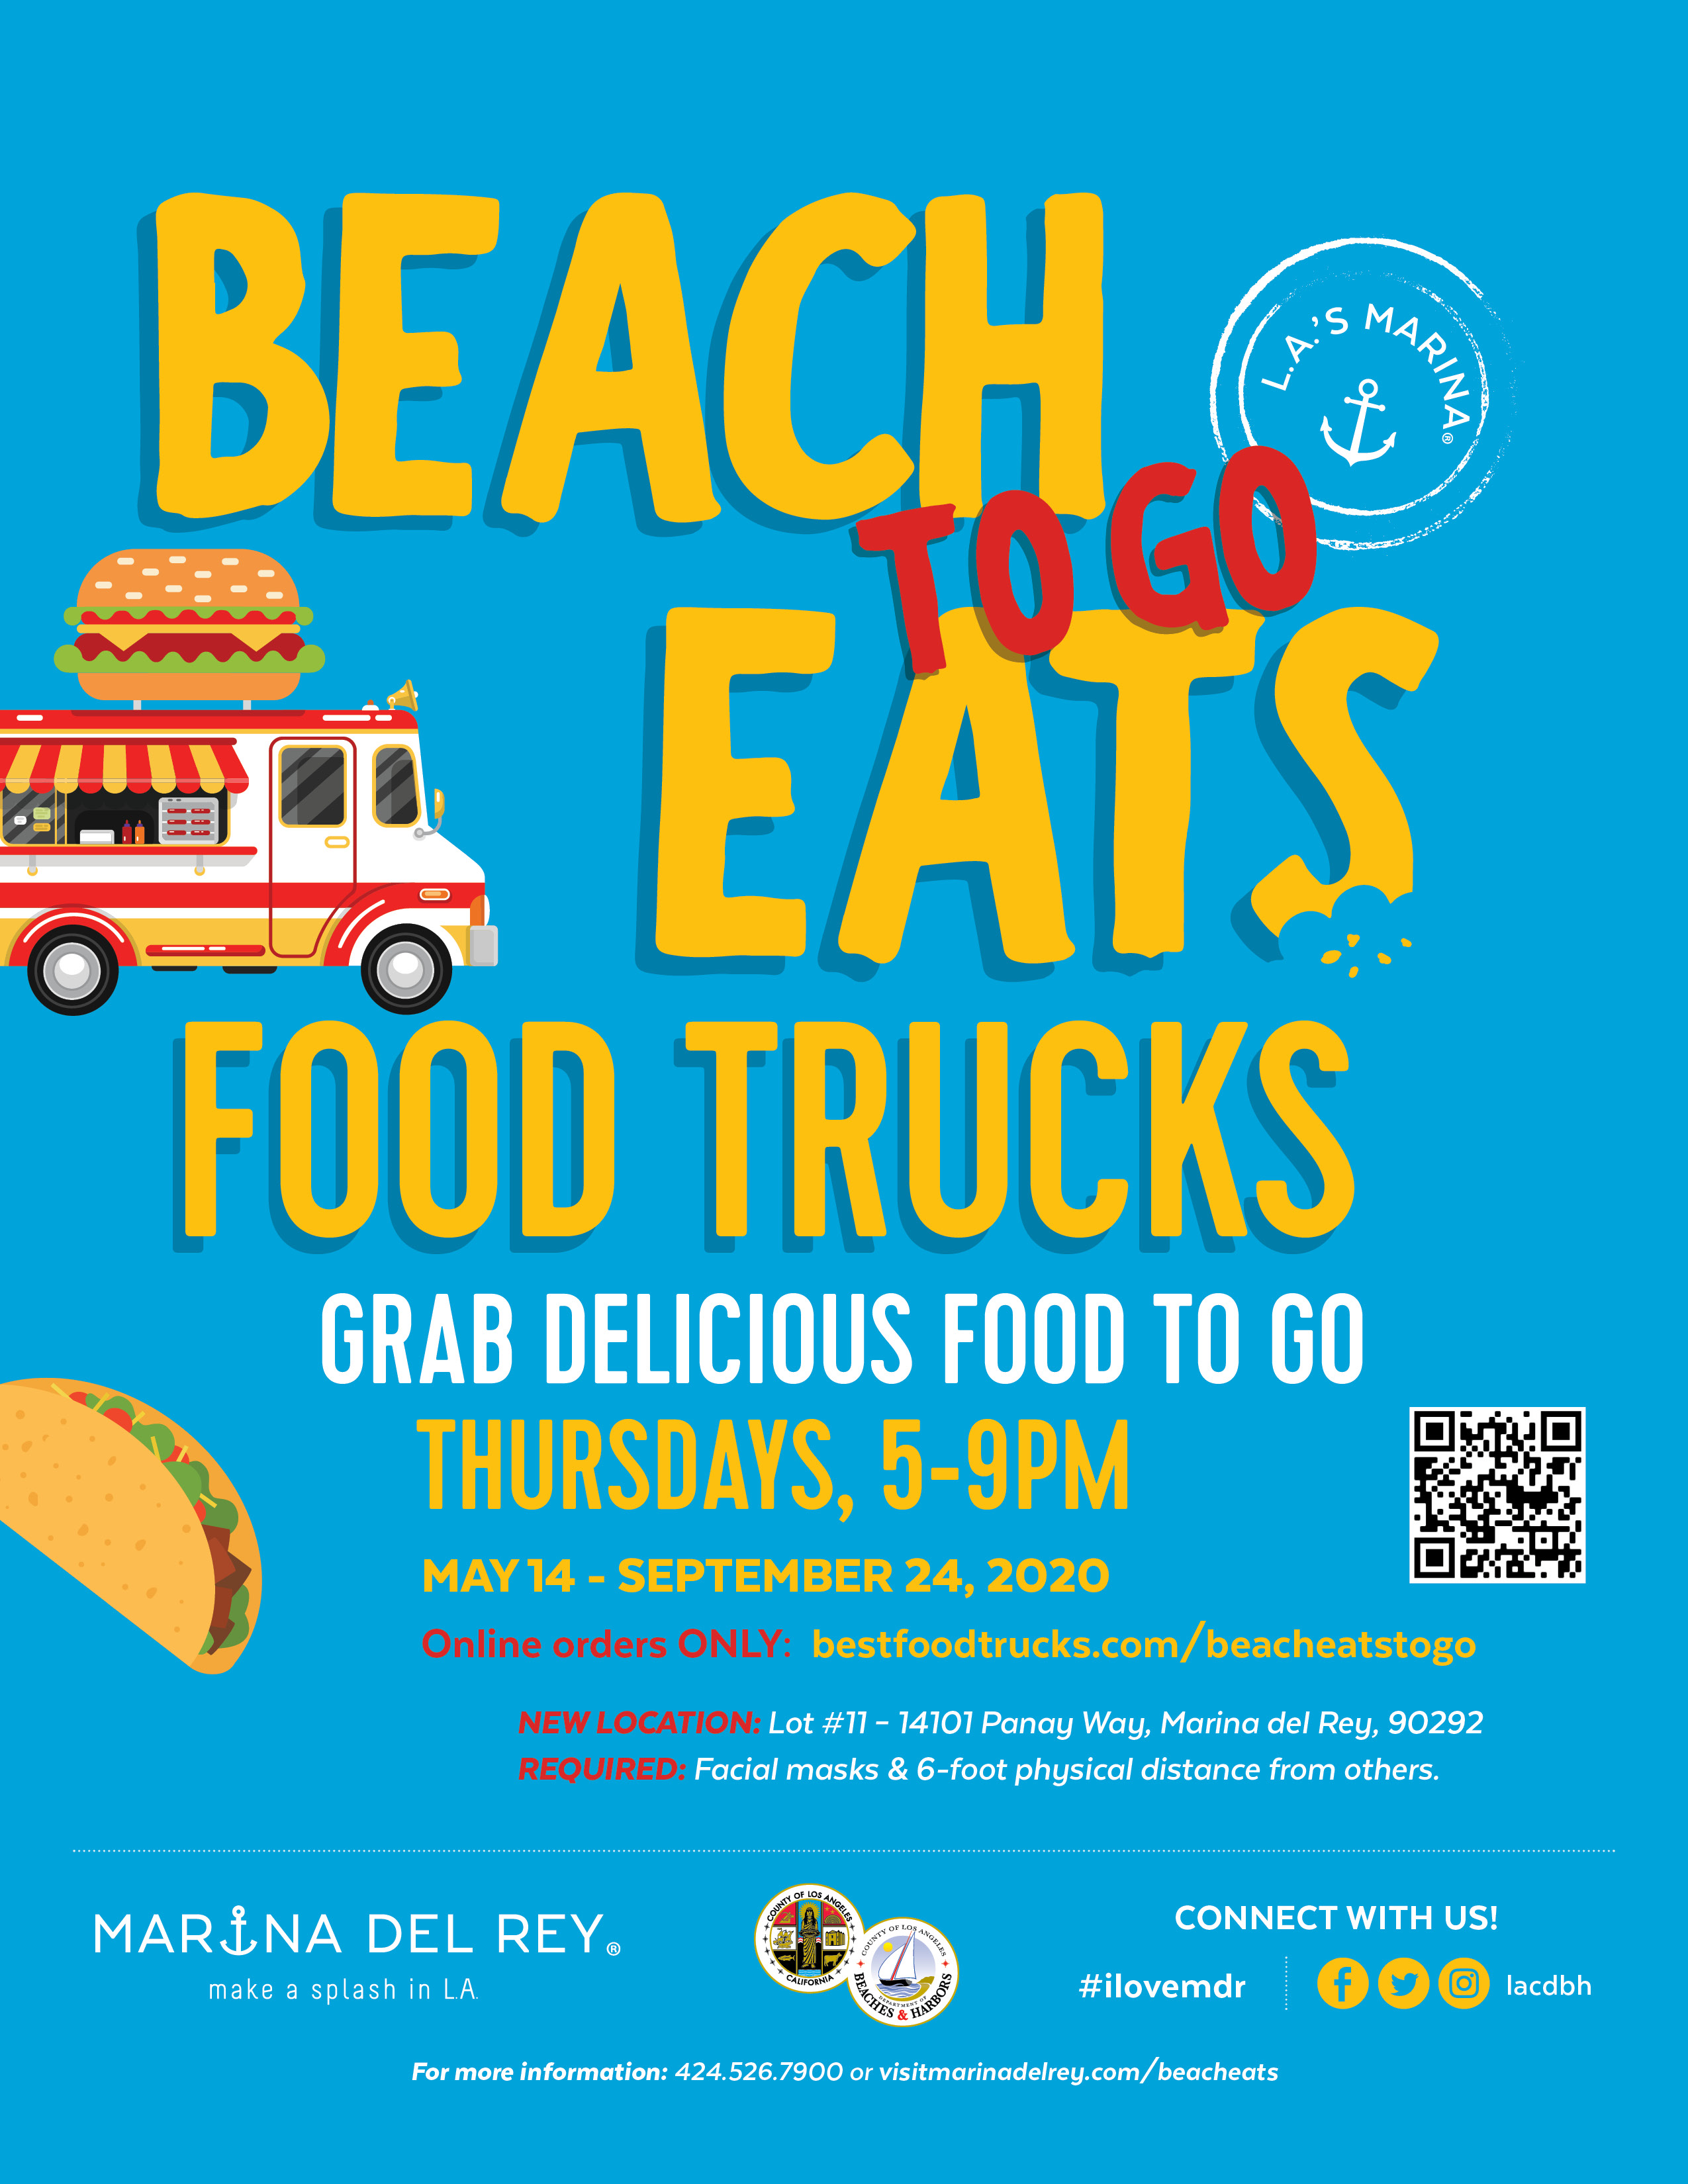 Beach Eats TO-GO means you can order from your favorite food truck, BY ORDERING ONLINE ONLY & picking up.